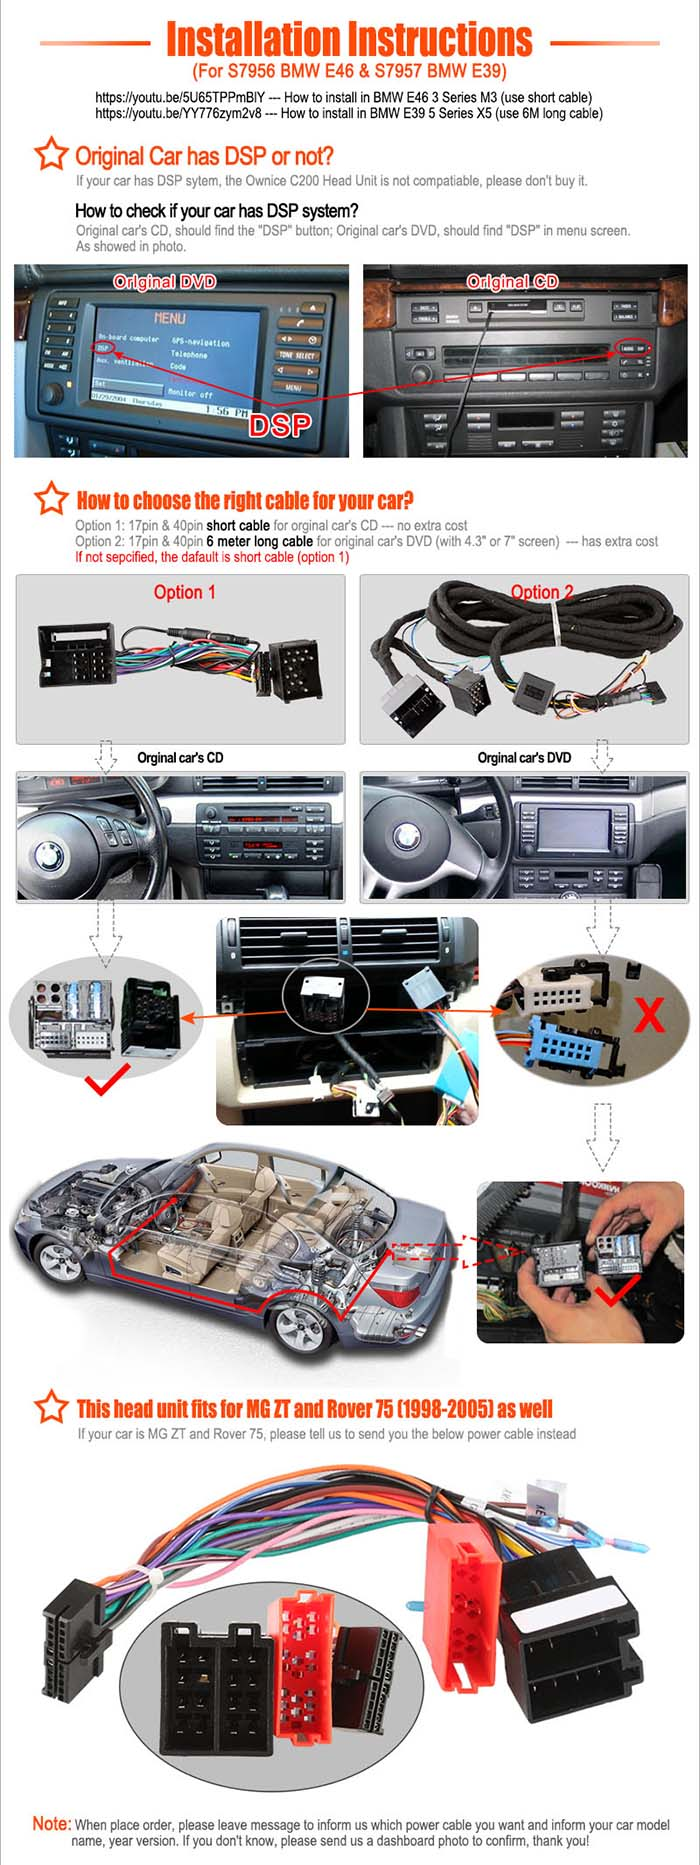 Install Instructions for BMW_1468892872103.jpg